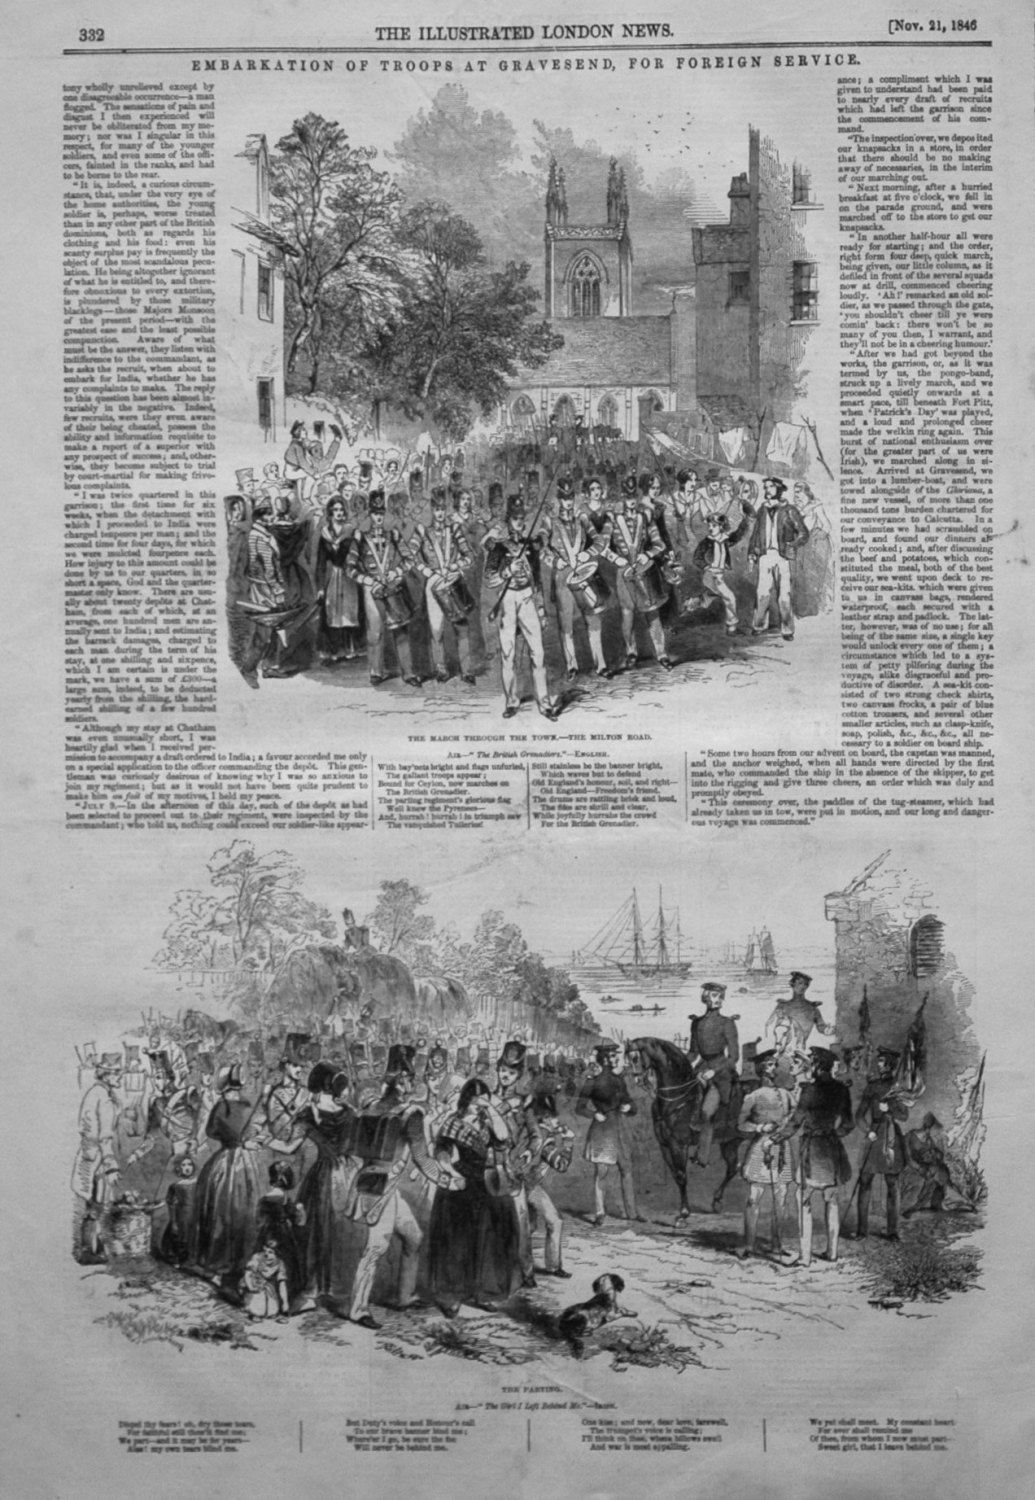 Embarkation of Troops at Gravesend, for Foreign Service. 1846